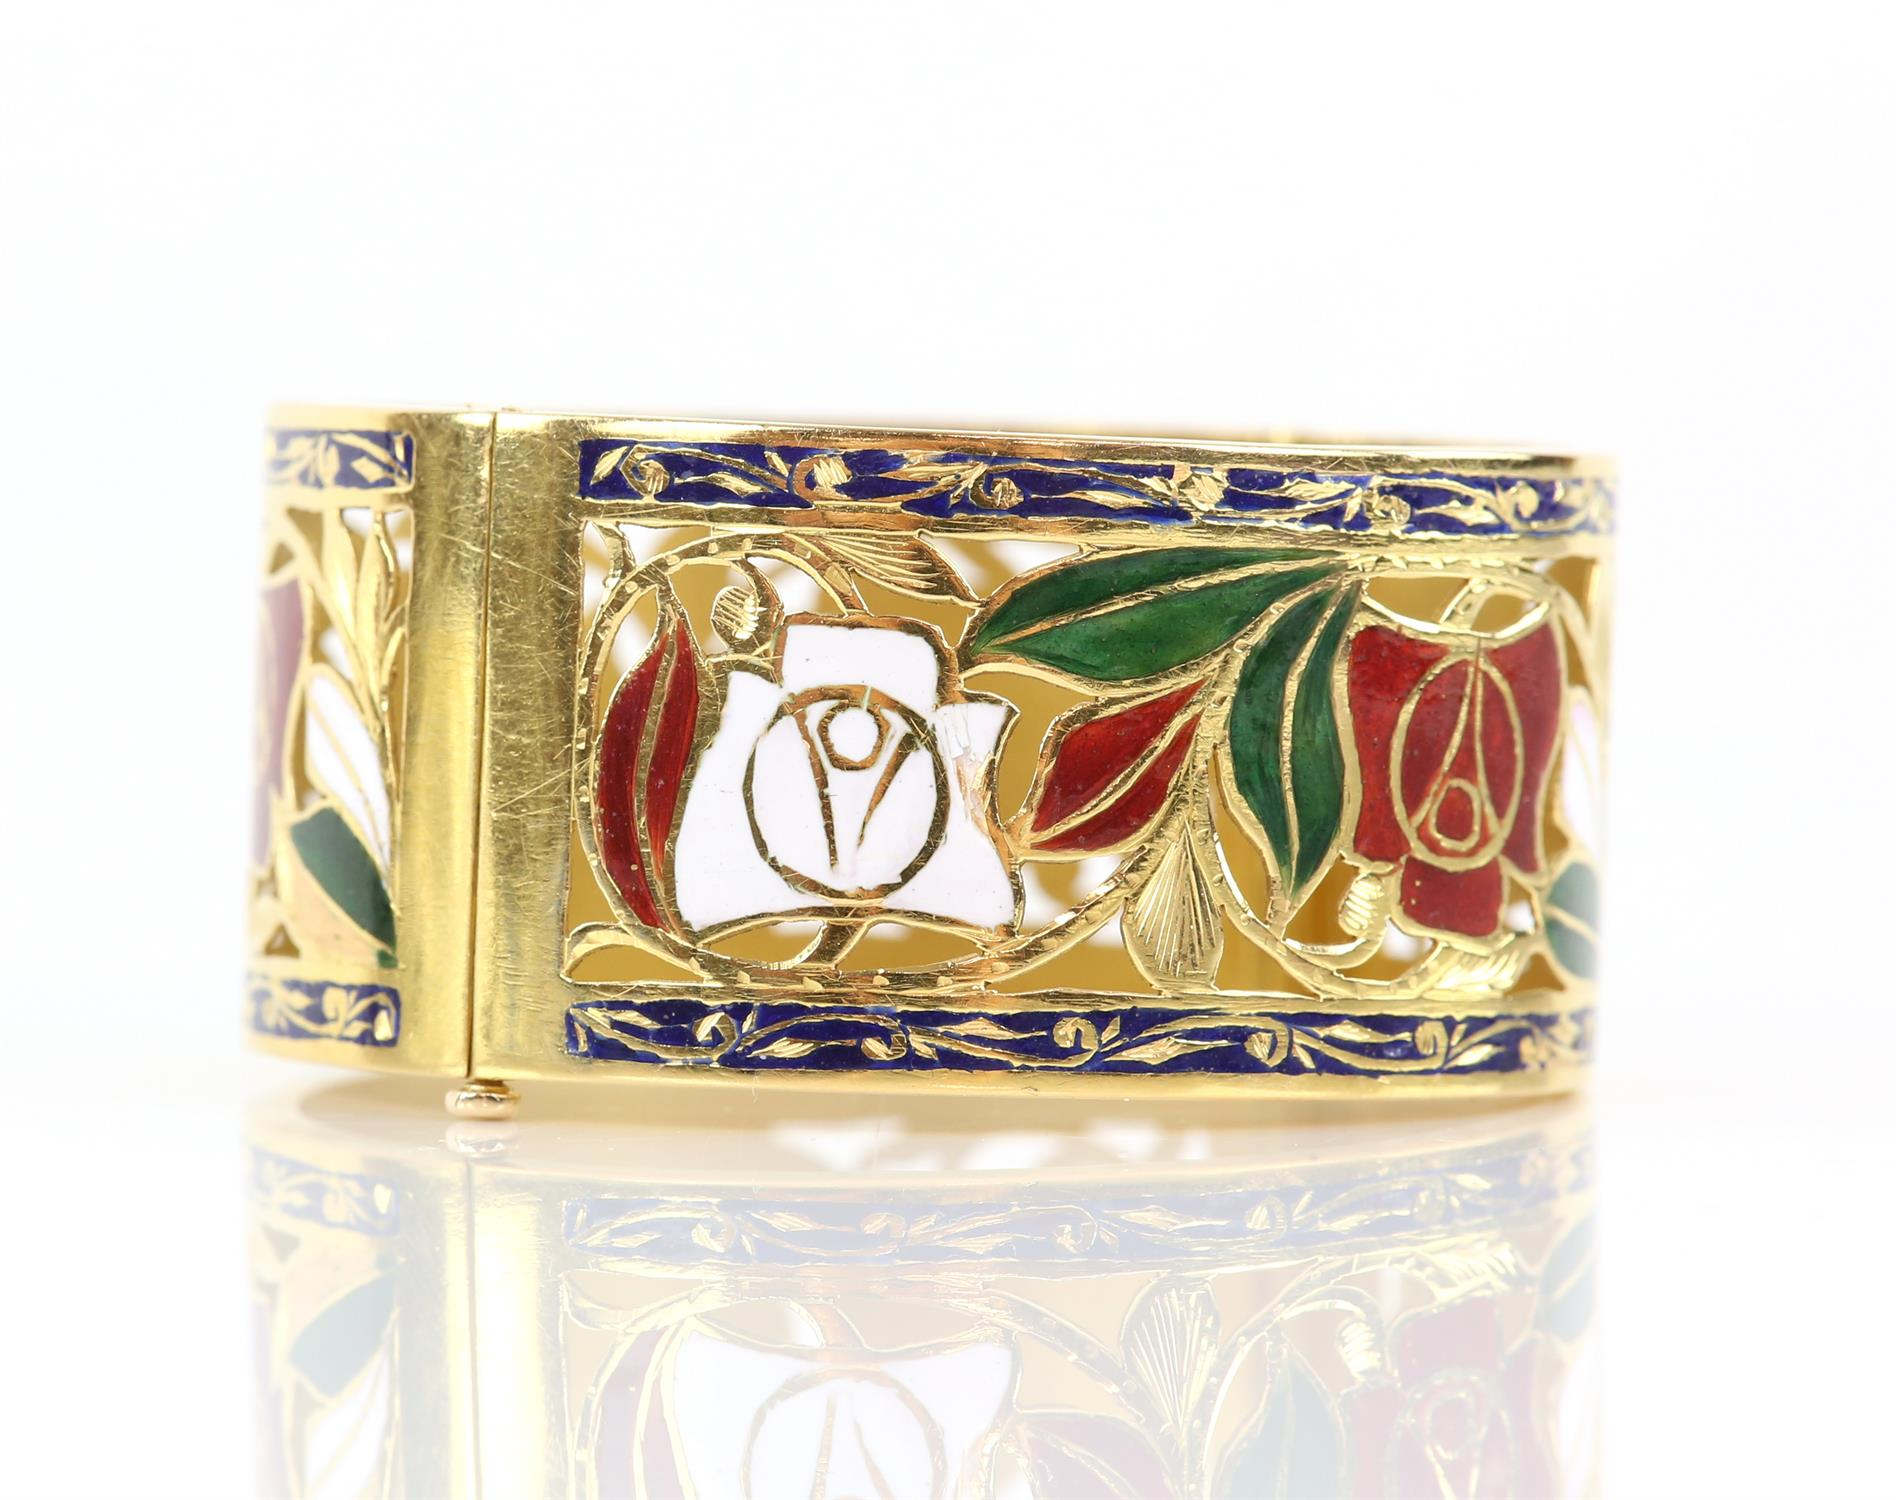 Enamel red and white rose gold pierced bangle, with enamel leaves and scrolled blue enamel borders, - Image 6 of 7